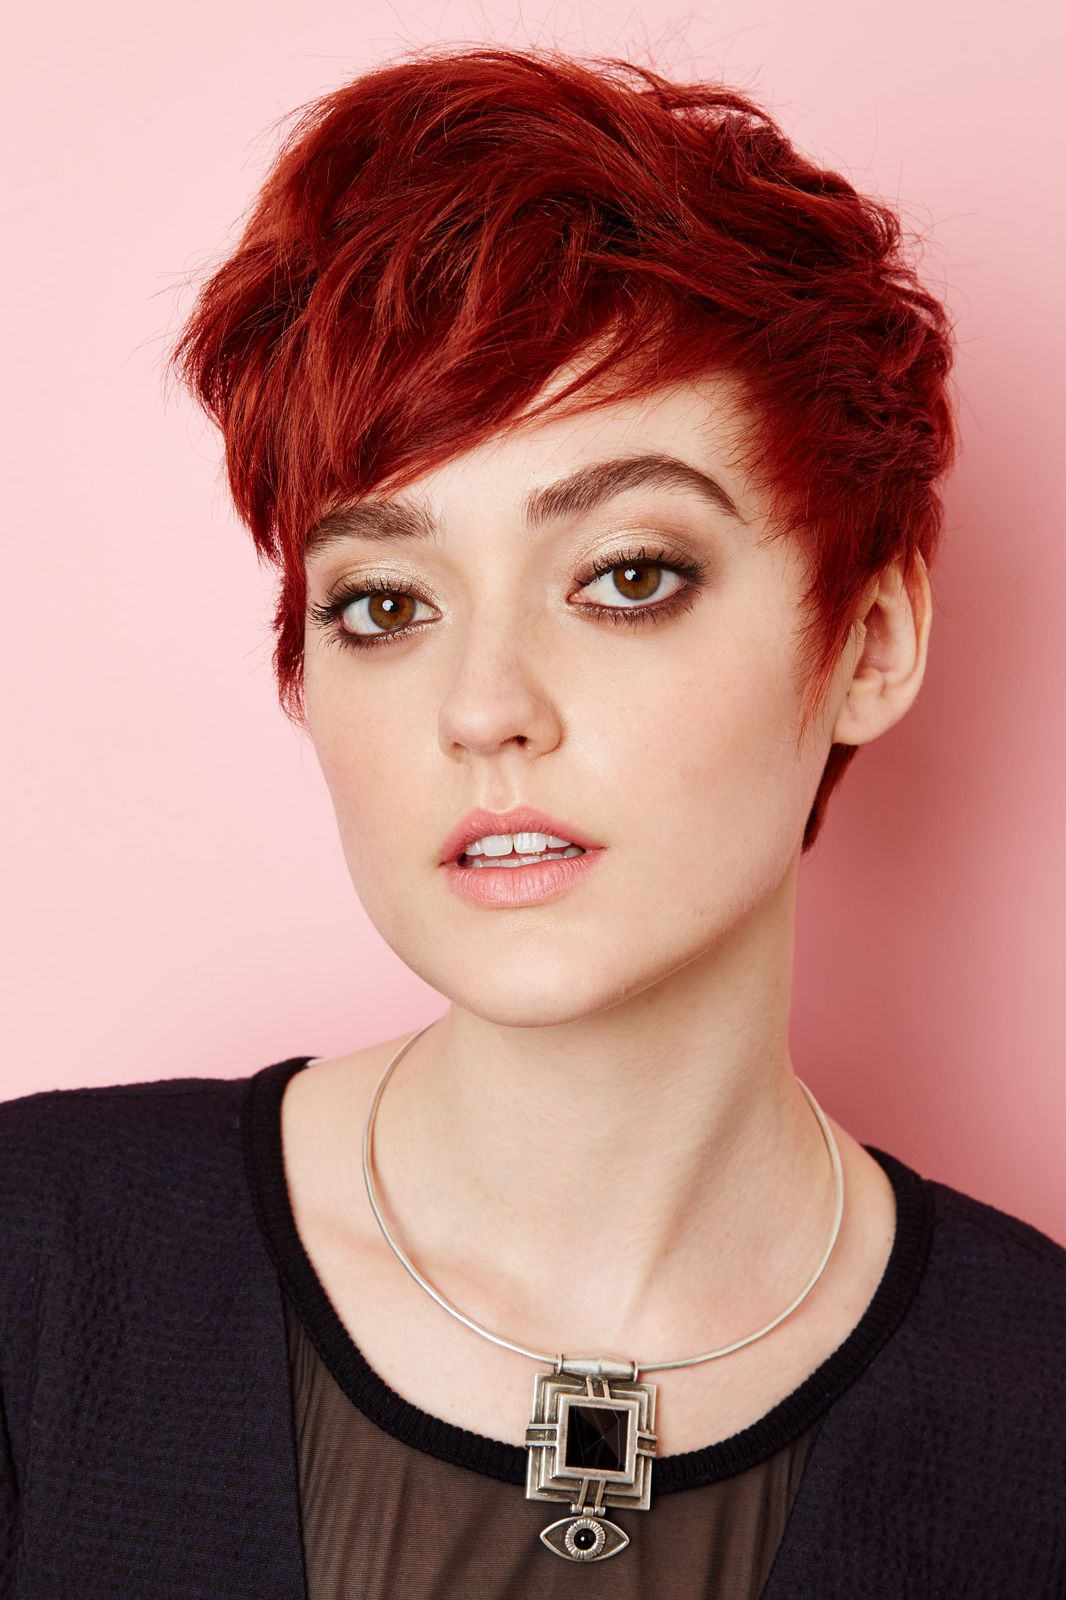 Short hairstyles spring diy looks spring hair pixie styles and